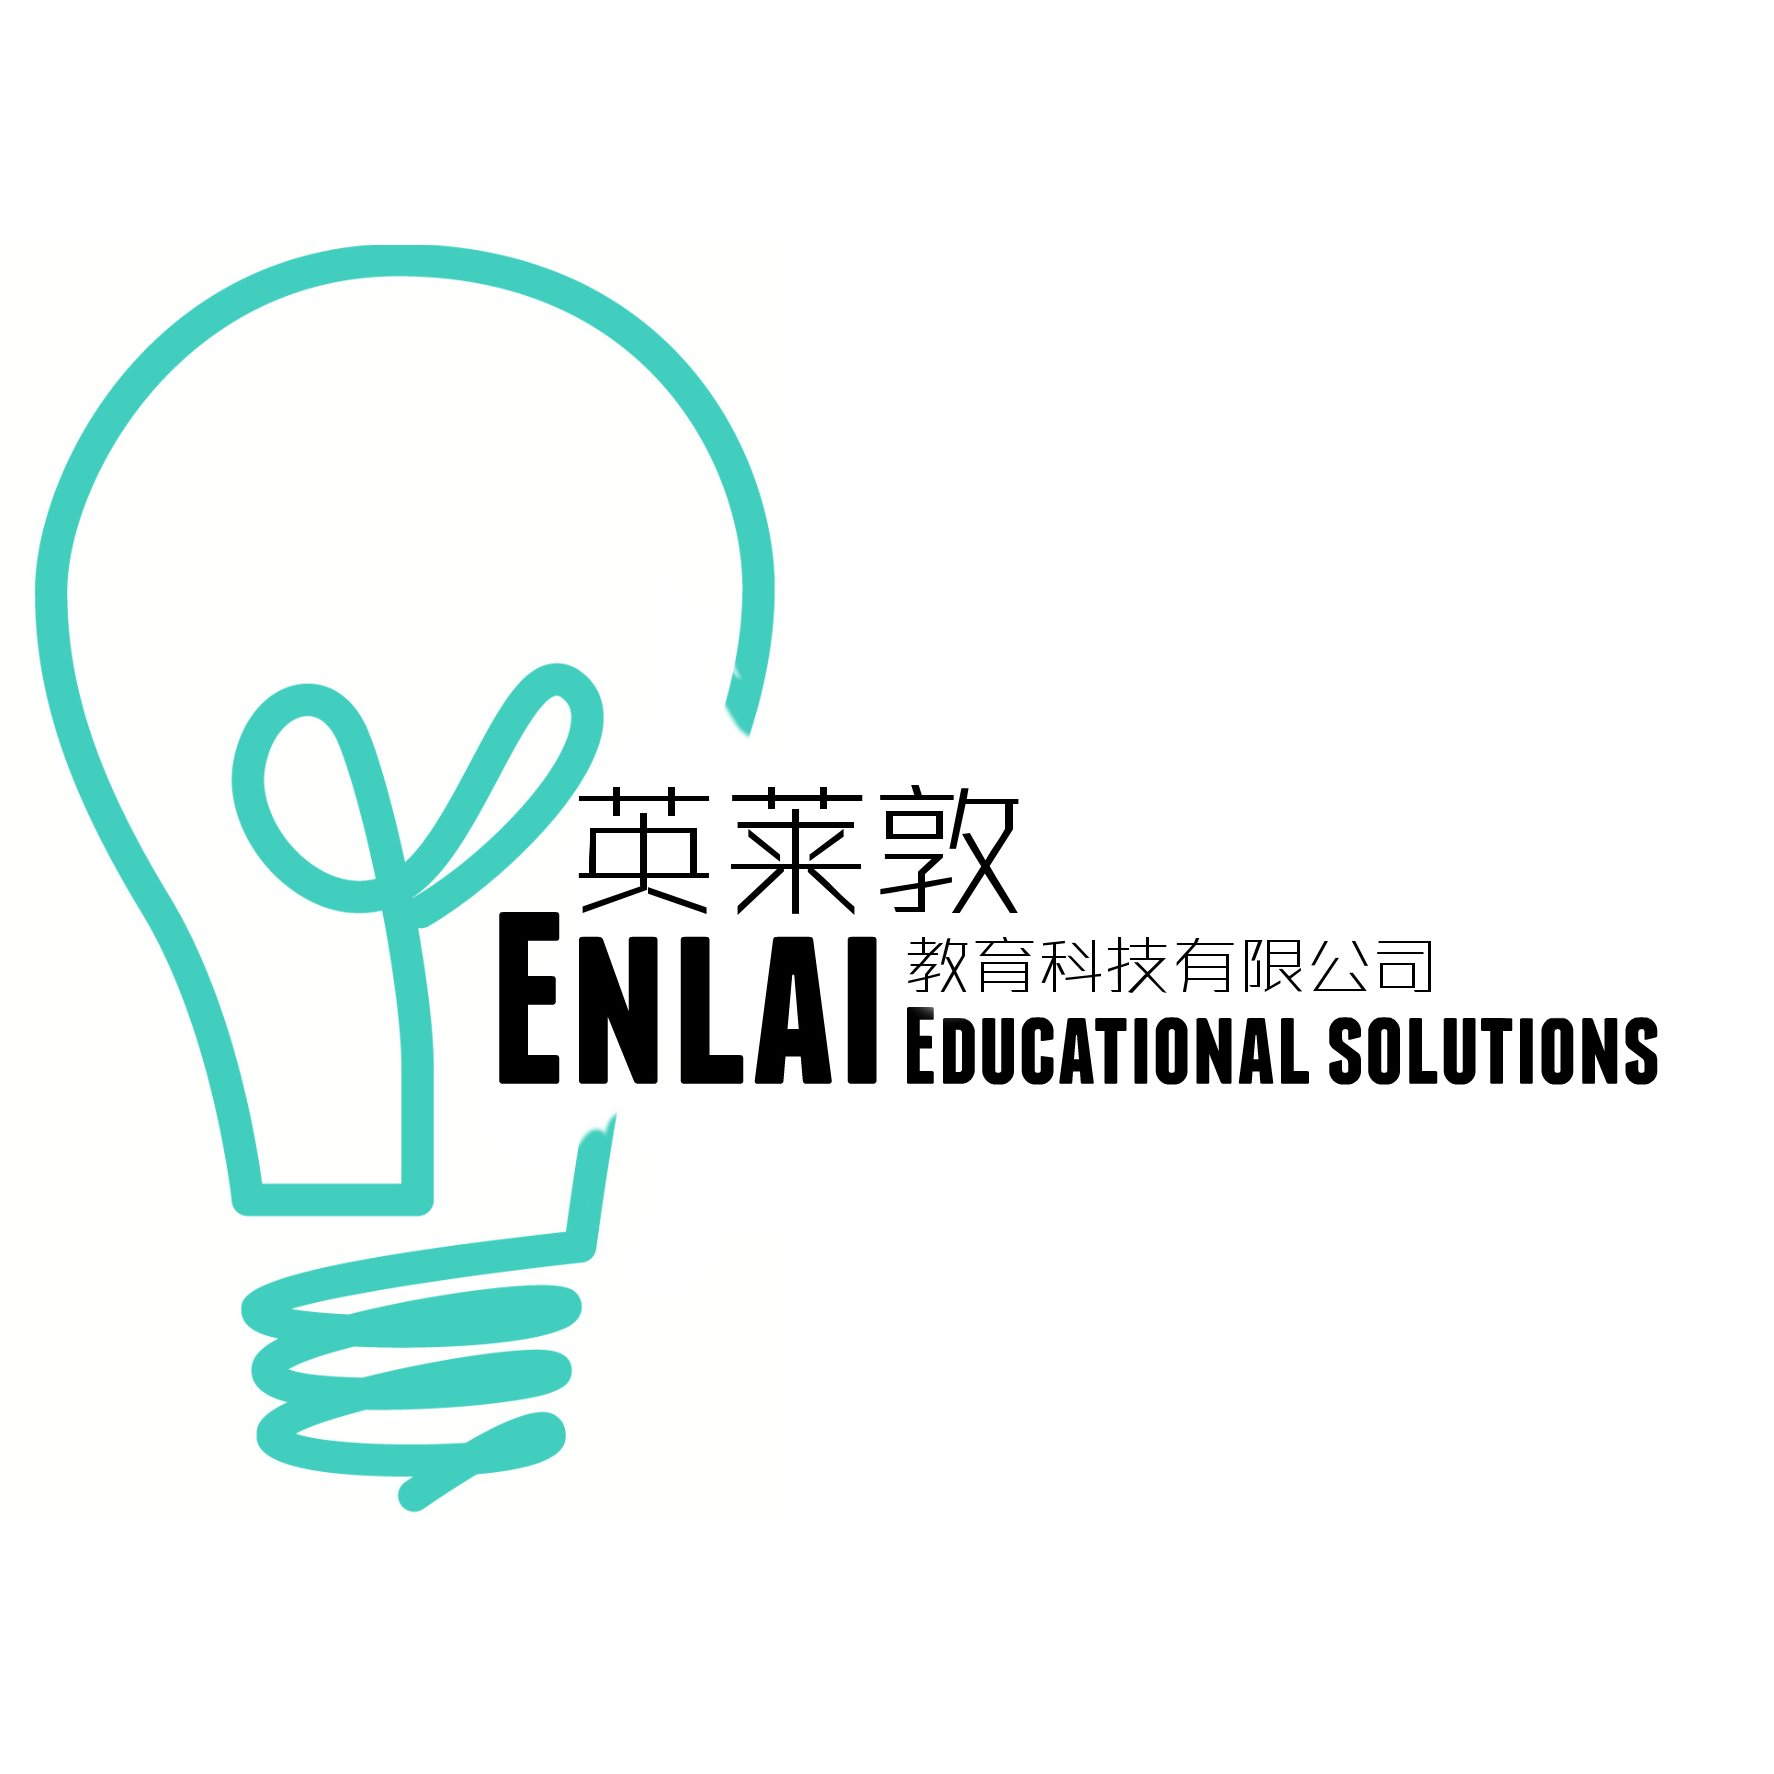 Enlai Education